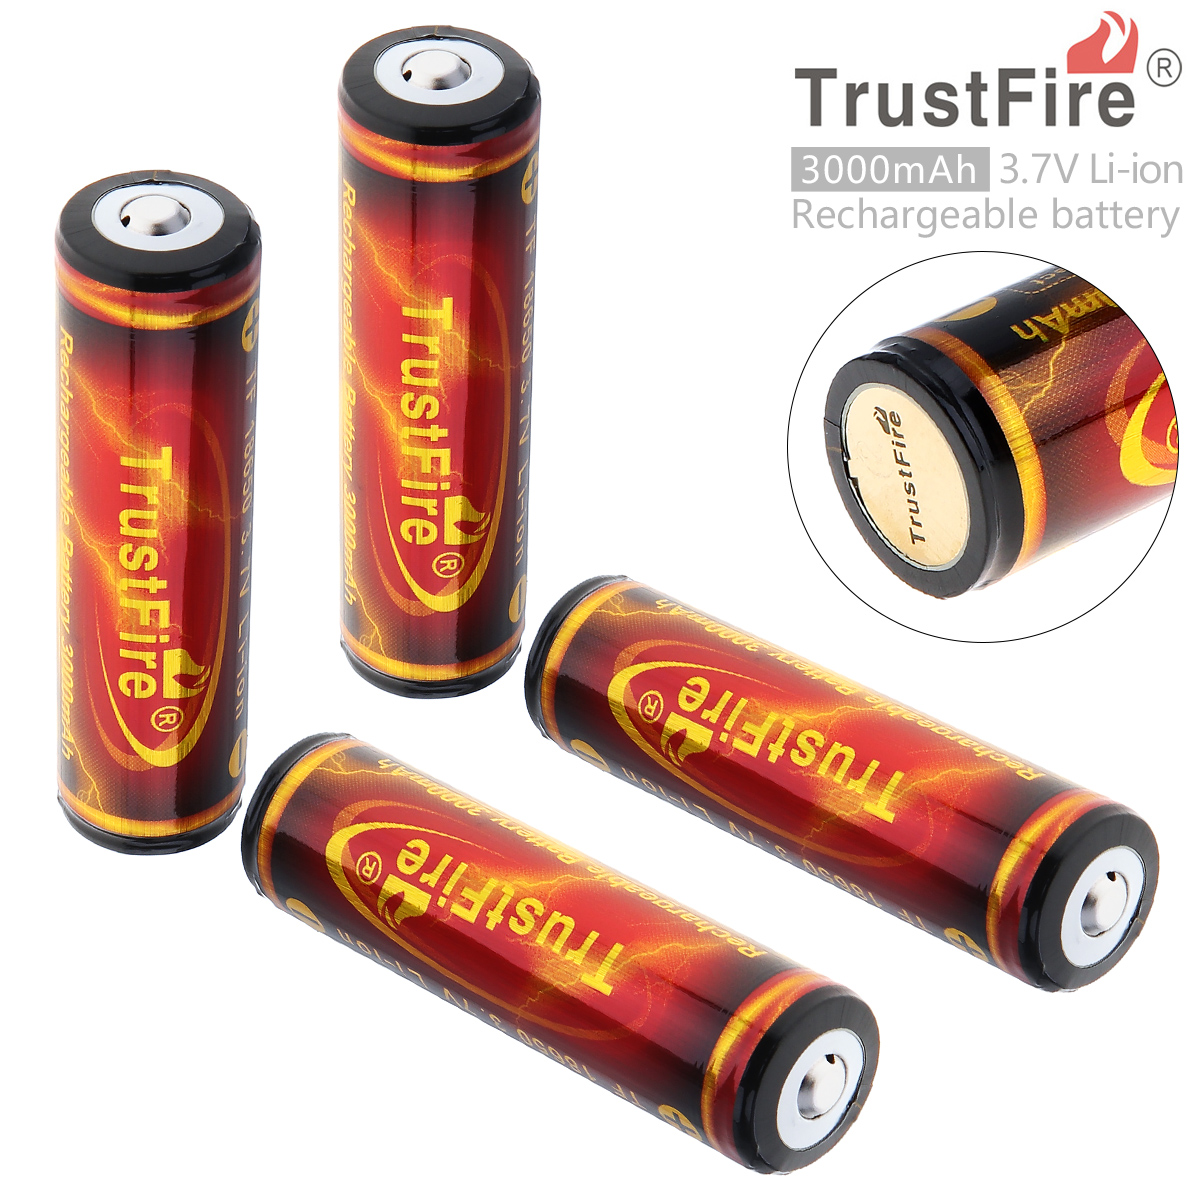 4pcs TrustFire PCB Protected 18650 3.7V 3000mAh High Capacity Flashlight Rechargeable Battery цена